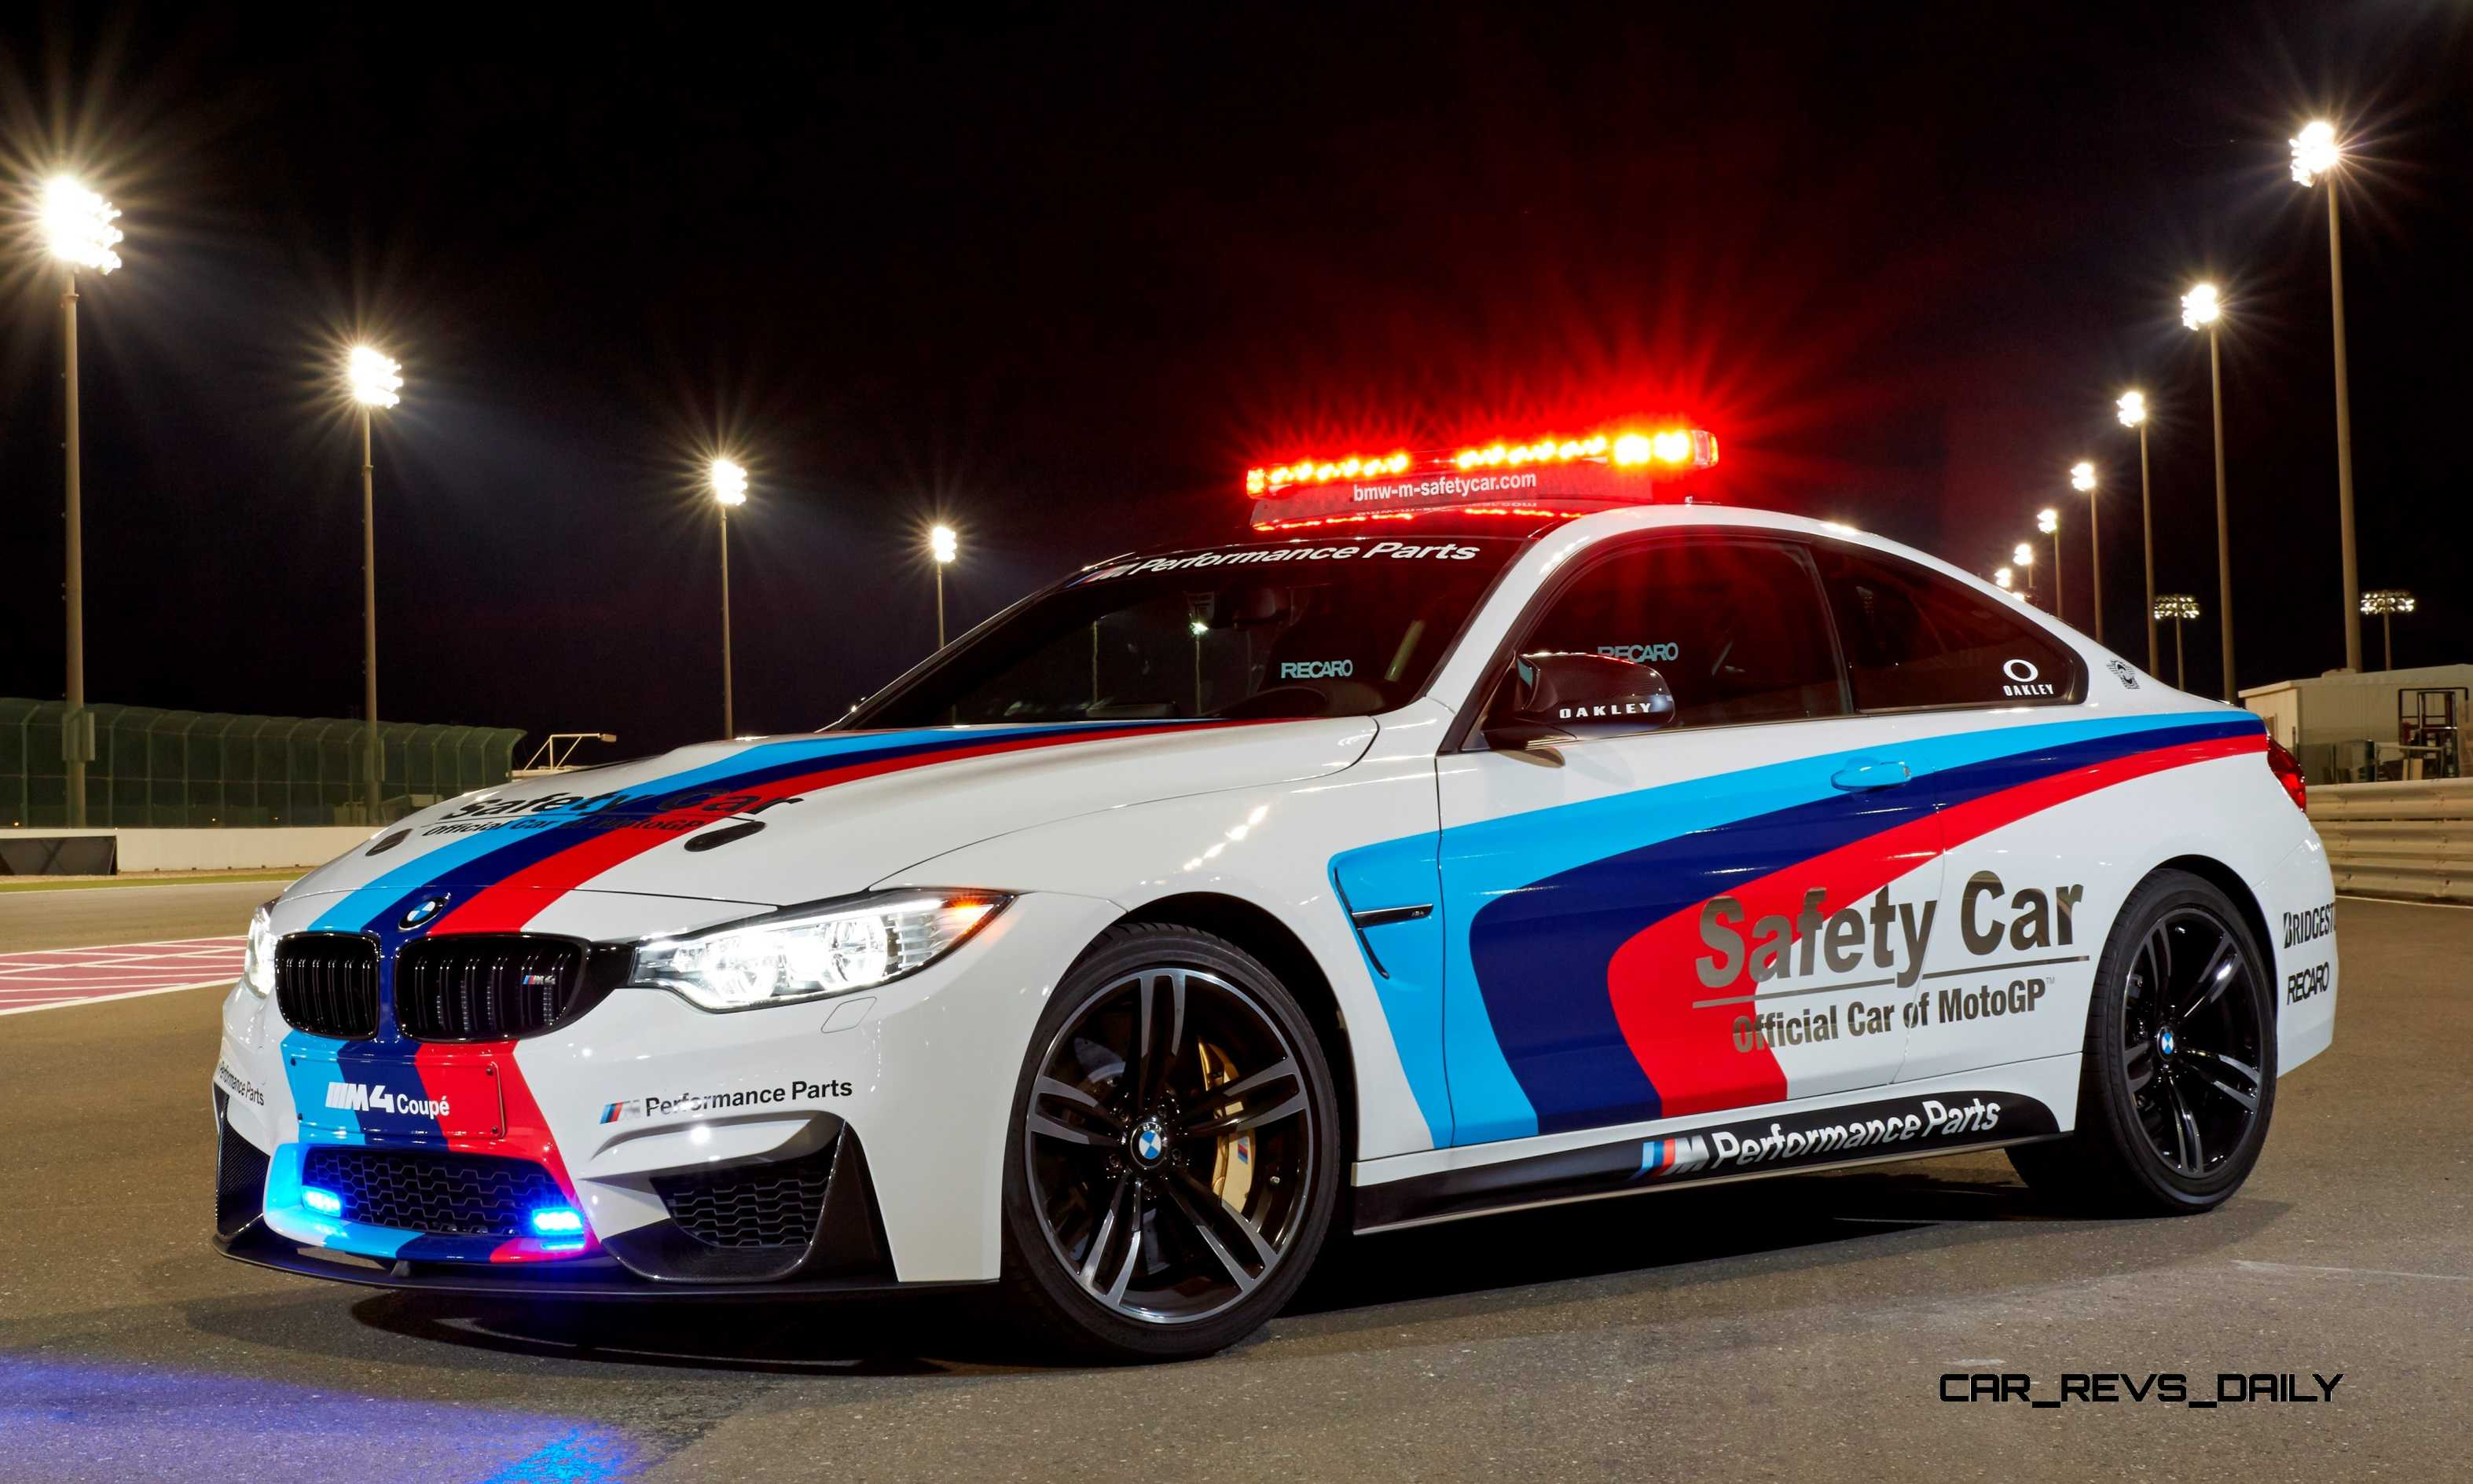 2015 bmw m4 safety car in 30 high res photos now raceable in gt6. Black Bedroom Furniture Sets. Home Design Ideas